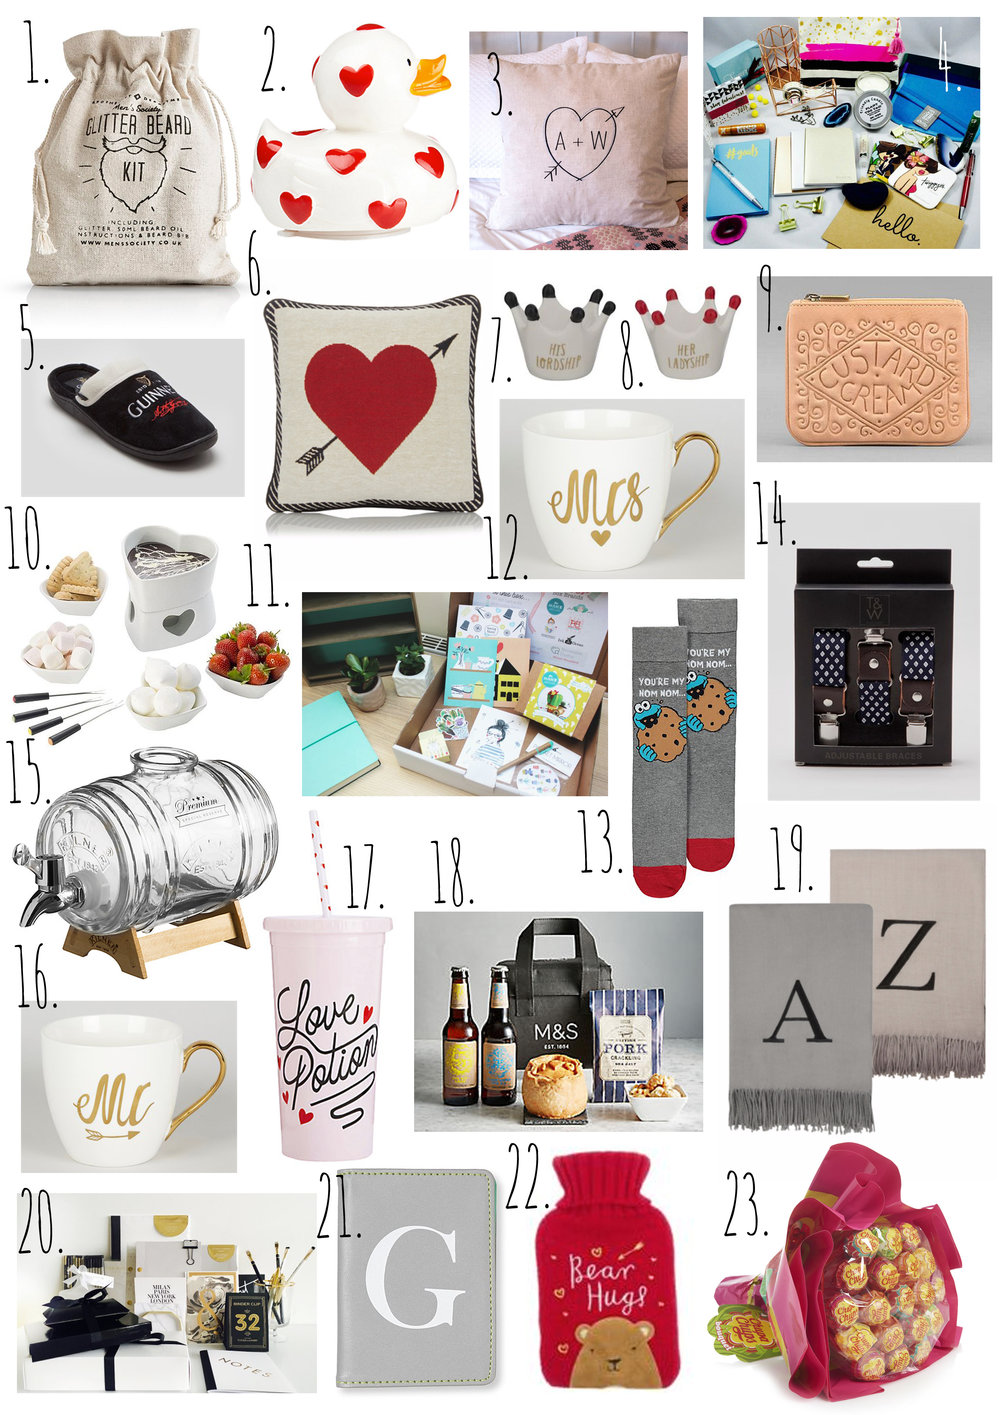 The Ultimate Valentine's Gift Guide for Him, Her & Everyone Else.